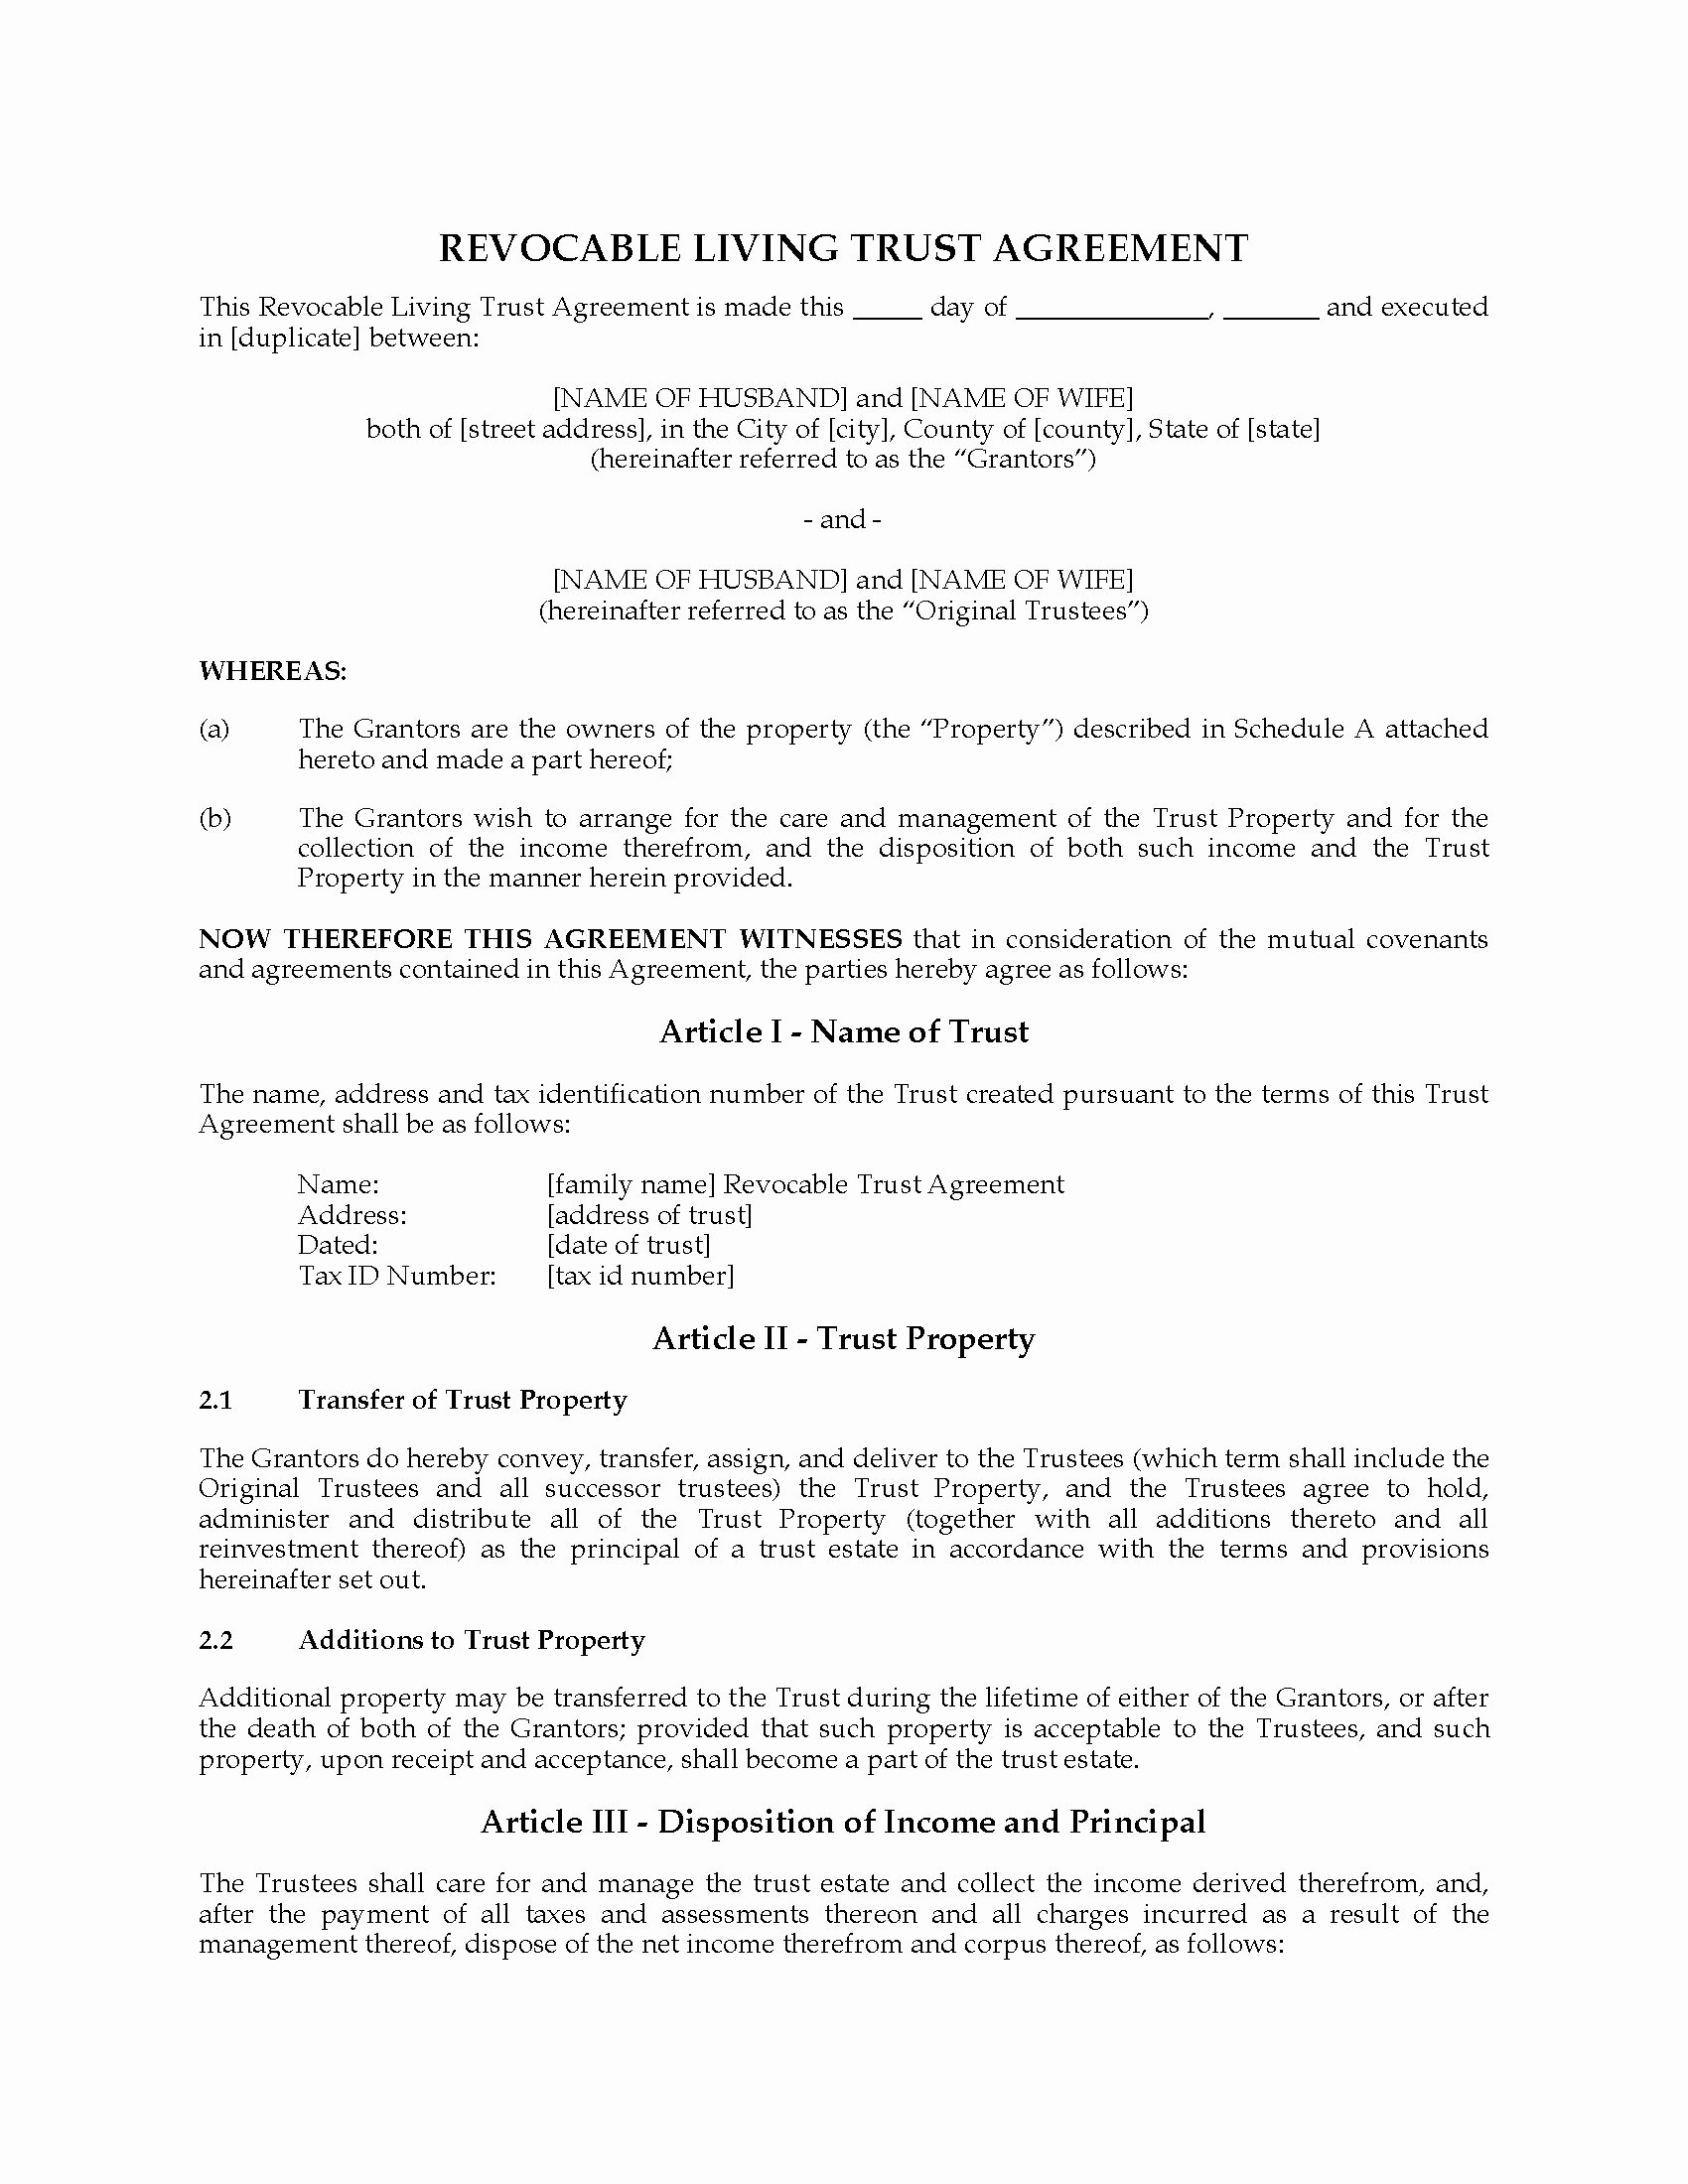 Living Agreement Template Awesome Usa Revocable Living Trust Agreement with Change Of